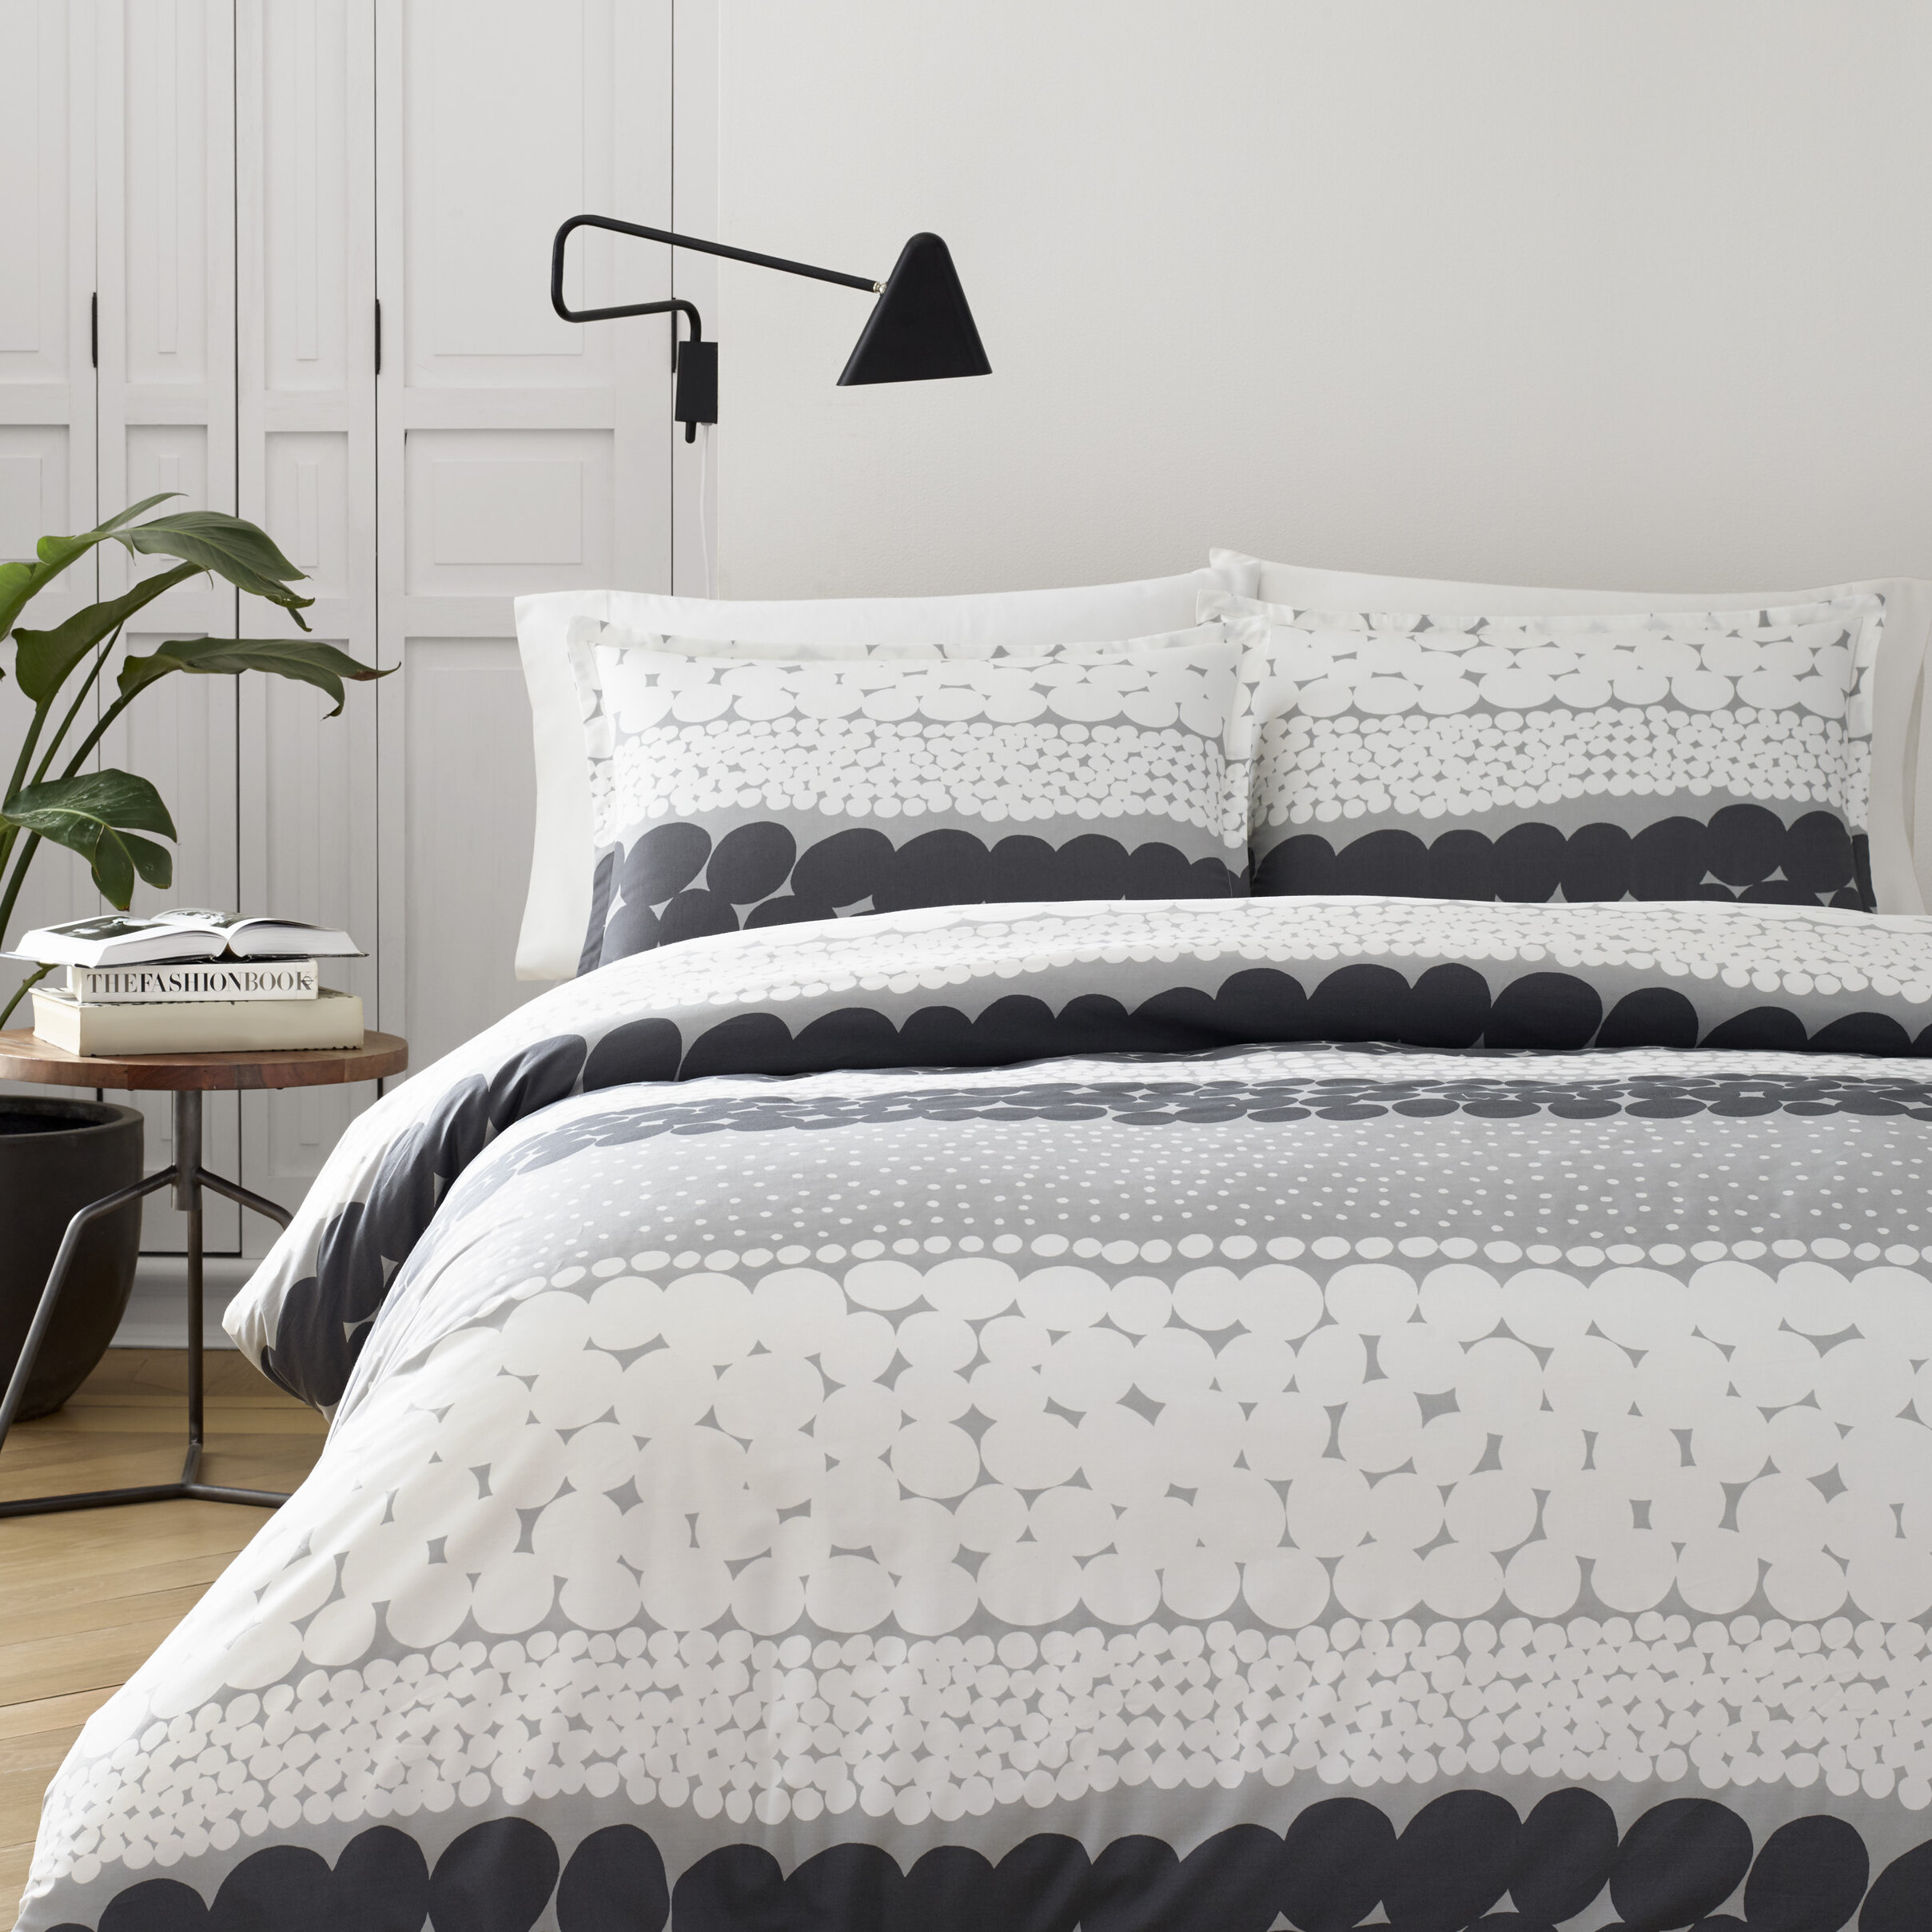 marimekko bed in lauren bedding elm house his is stockholm bedroom live london from throw littlebigbell laugh the company west cushion anchor ralph little white and design love rug archives tag home